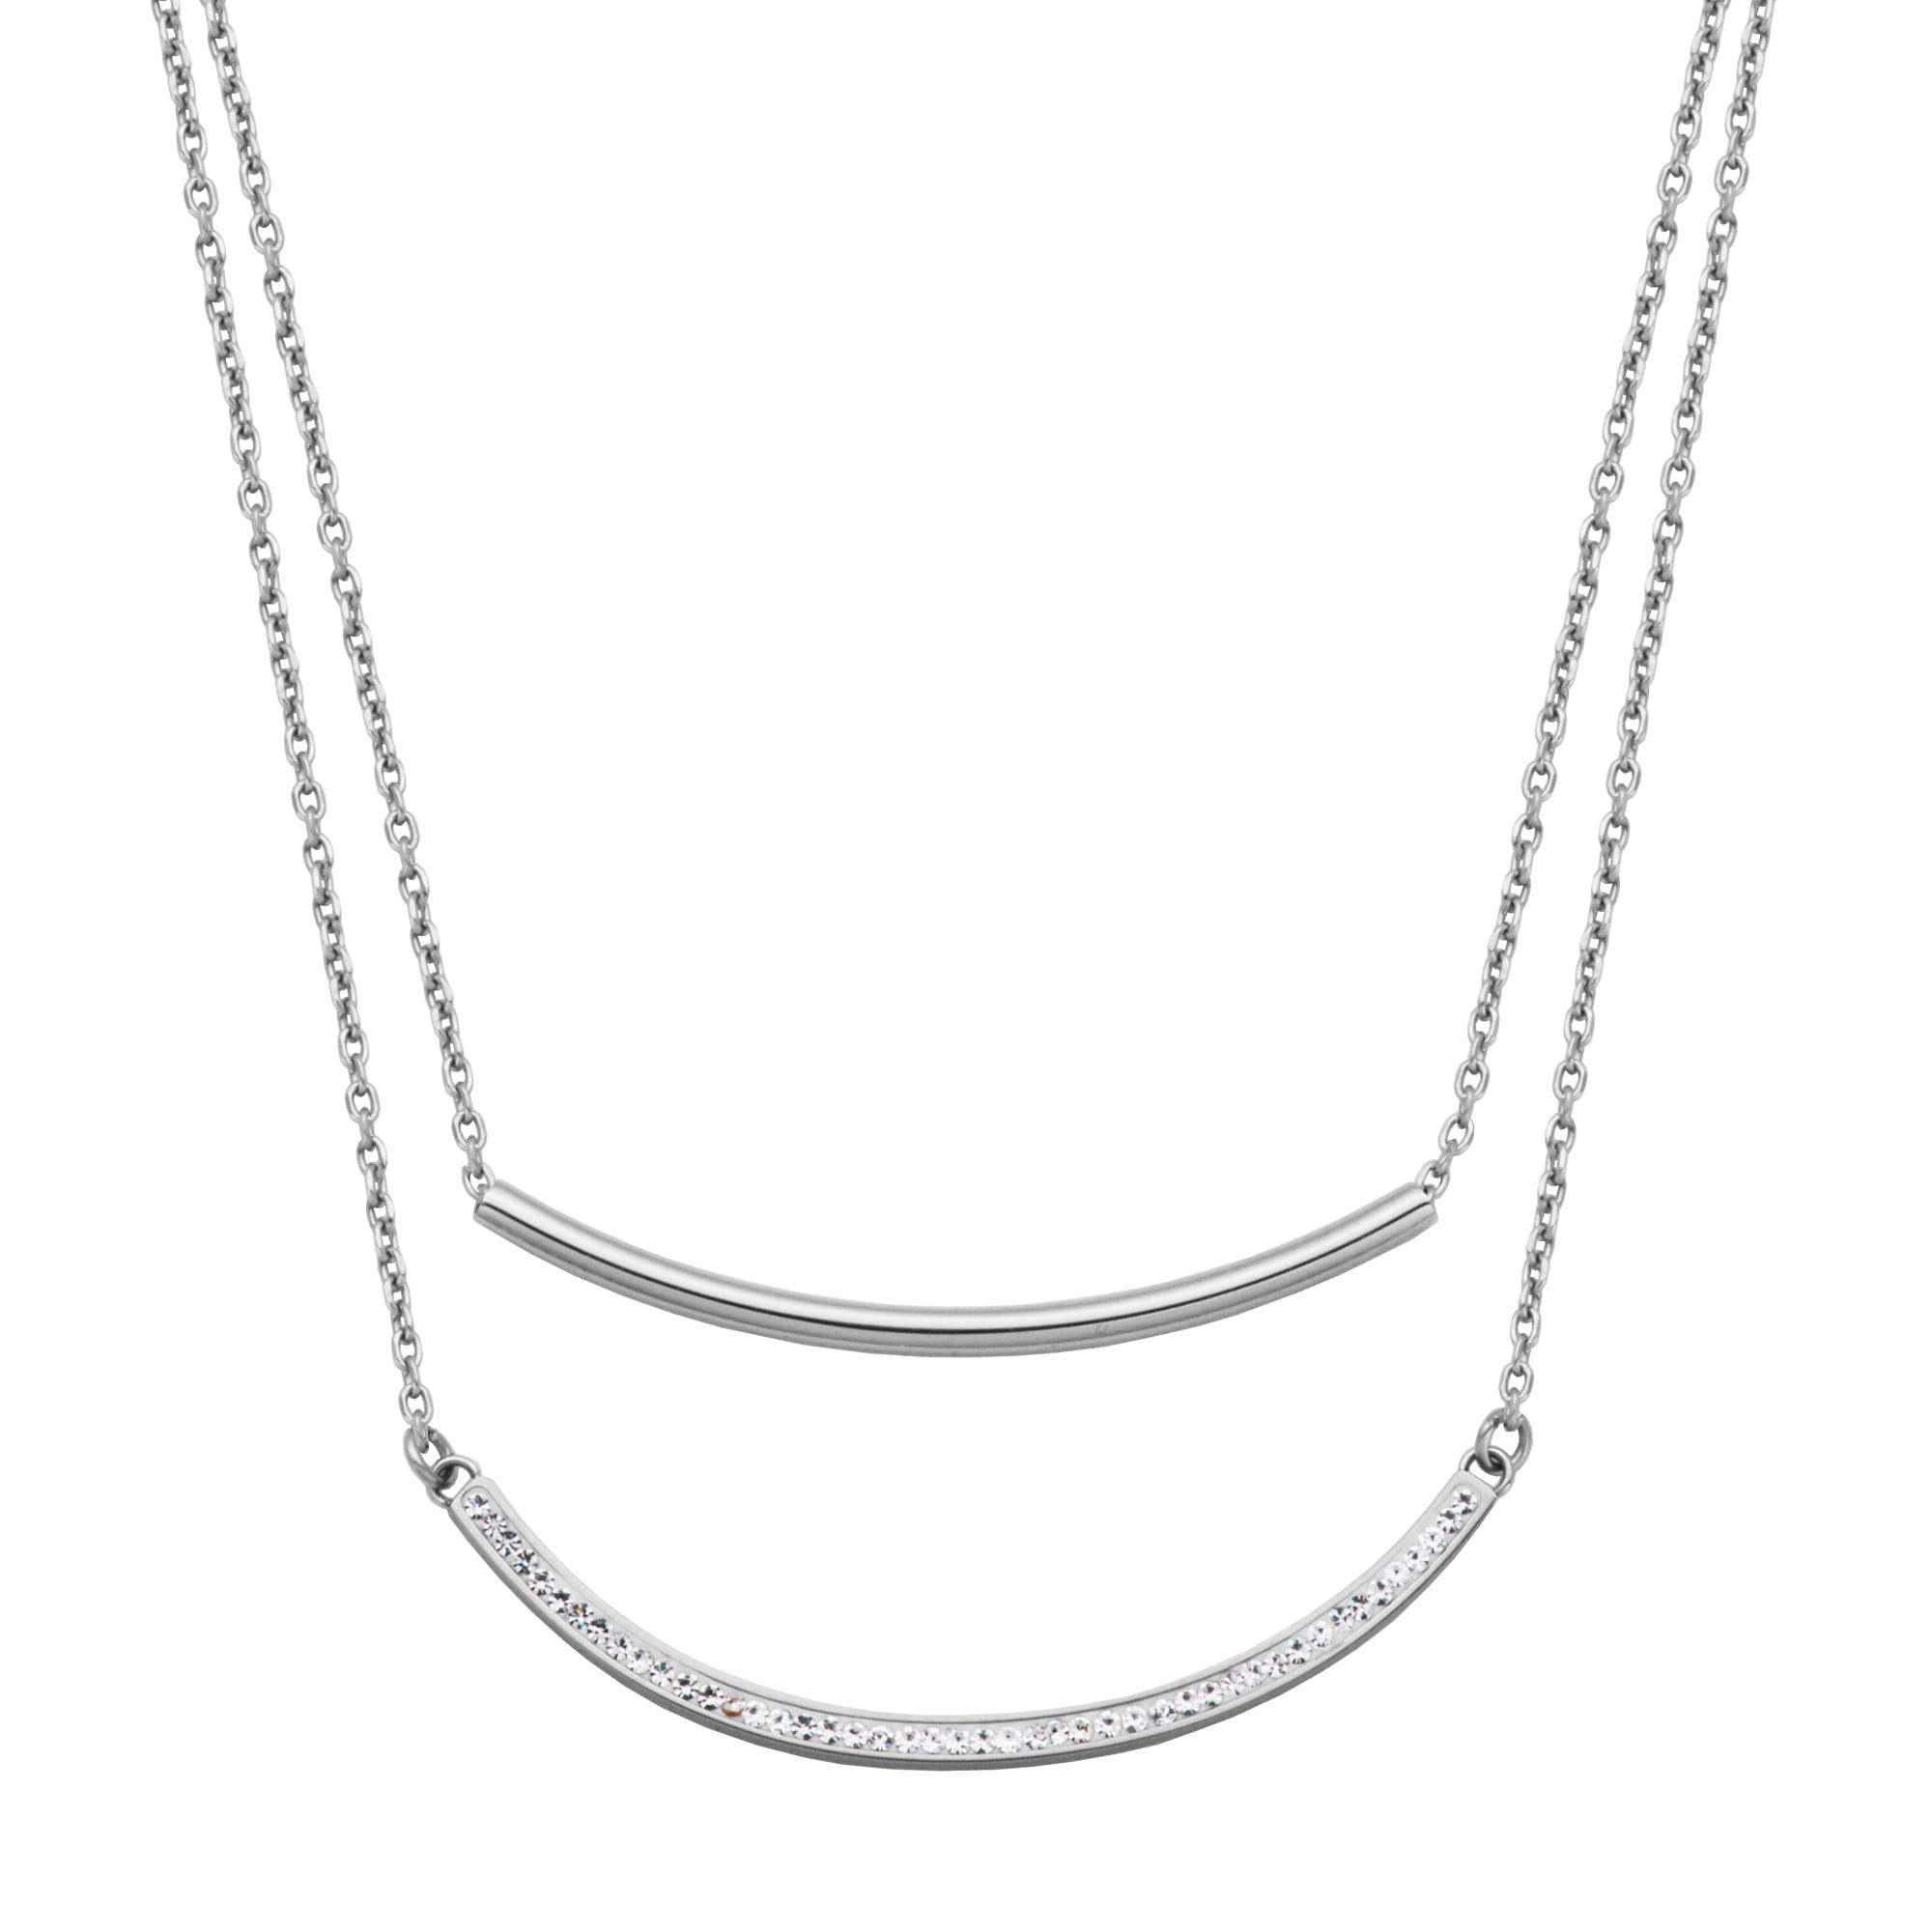 Double Layer Curved Bar Fashion Necklace in Stainless Steel